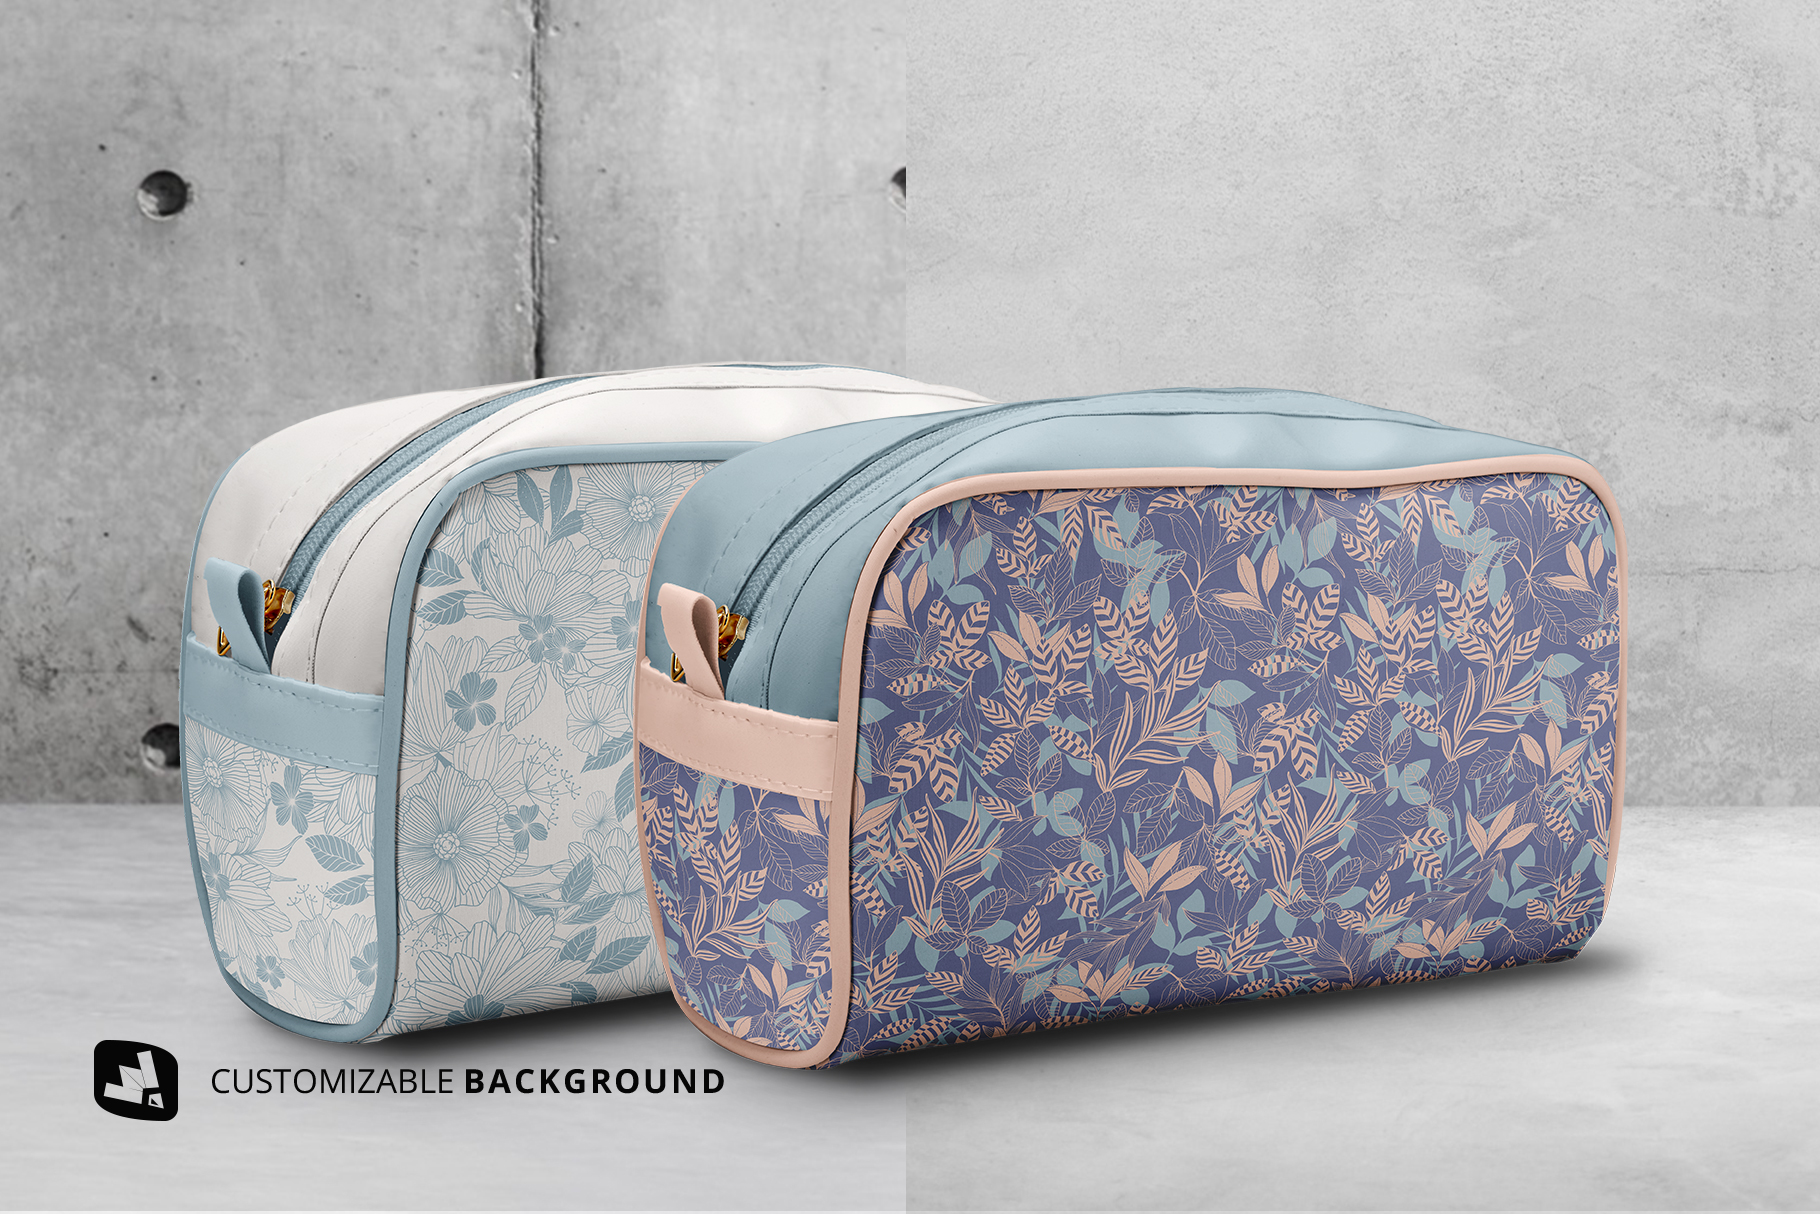 background options of the front view travel makeup bag mockup